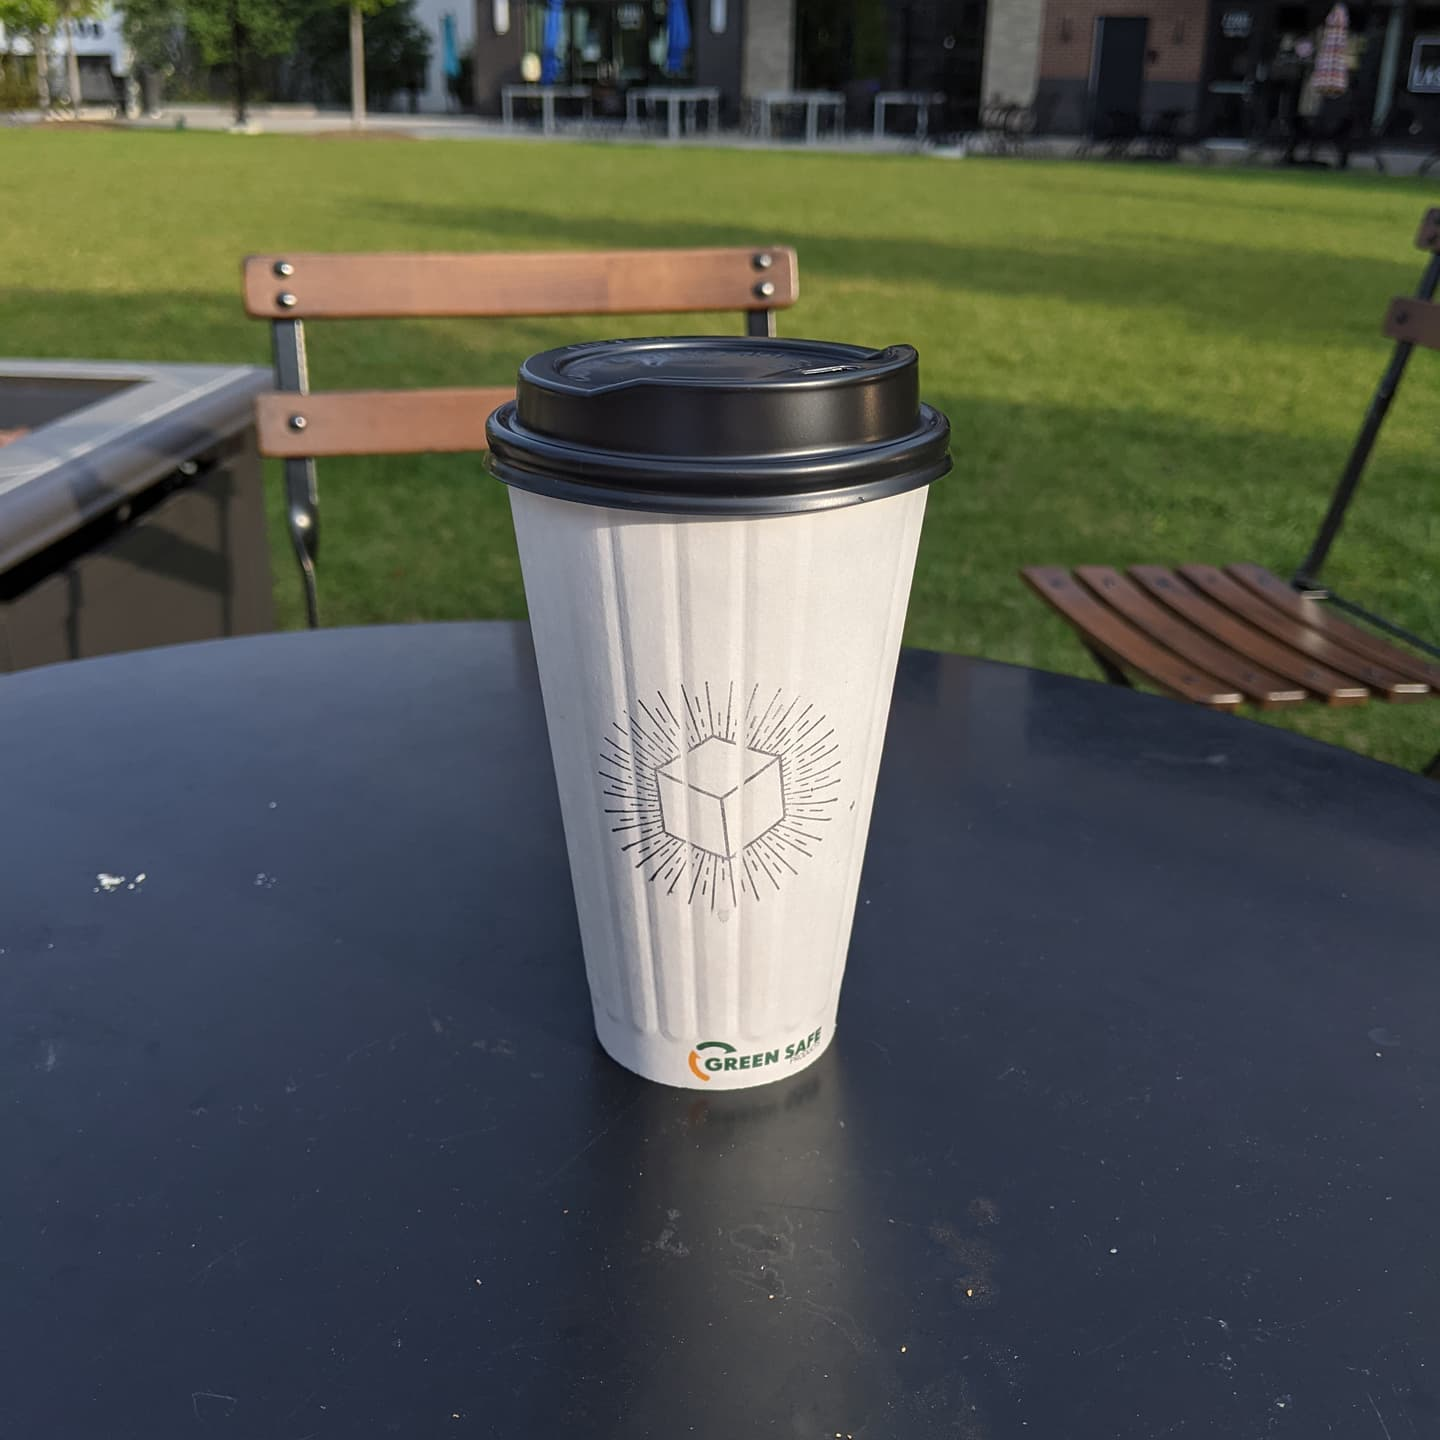 Ahhh... Morning coffee in Dearborn before a long work day. It is really nice this morning. #blackboxcoffee #detroit